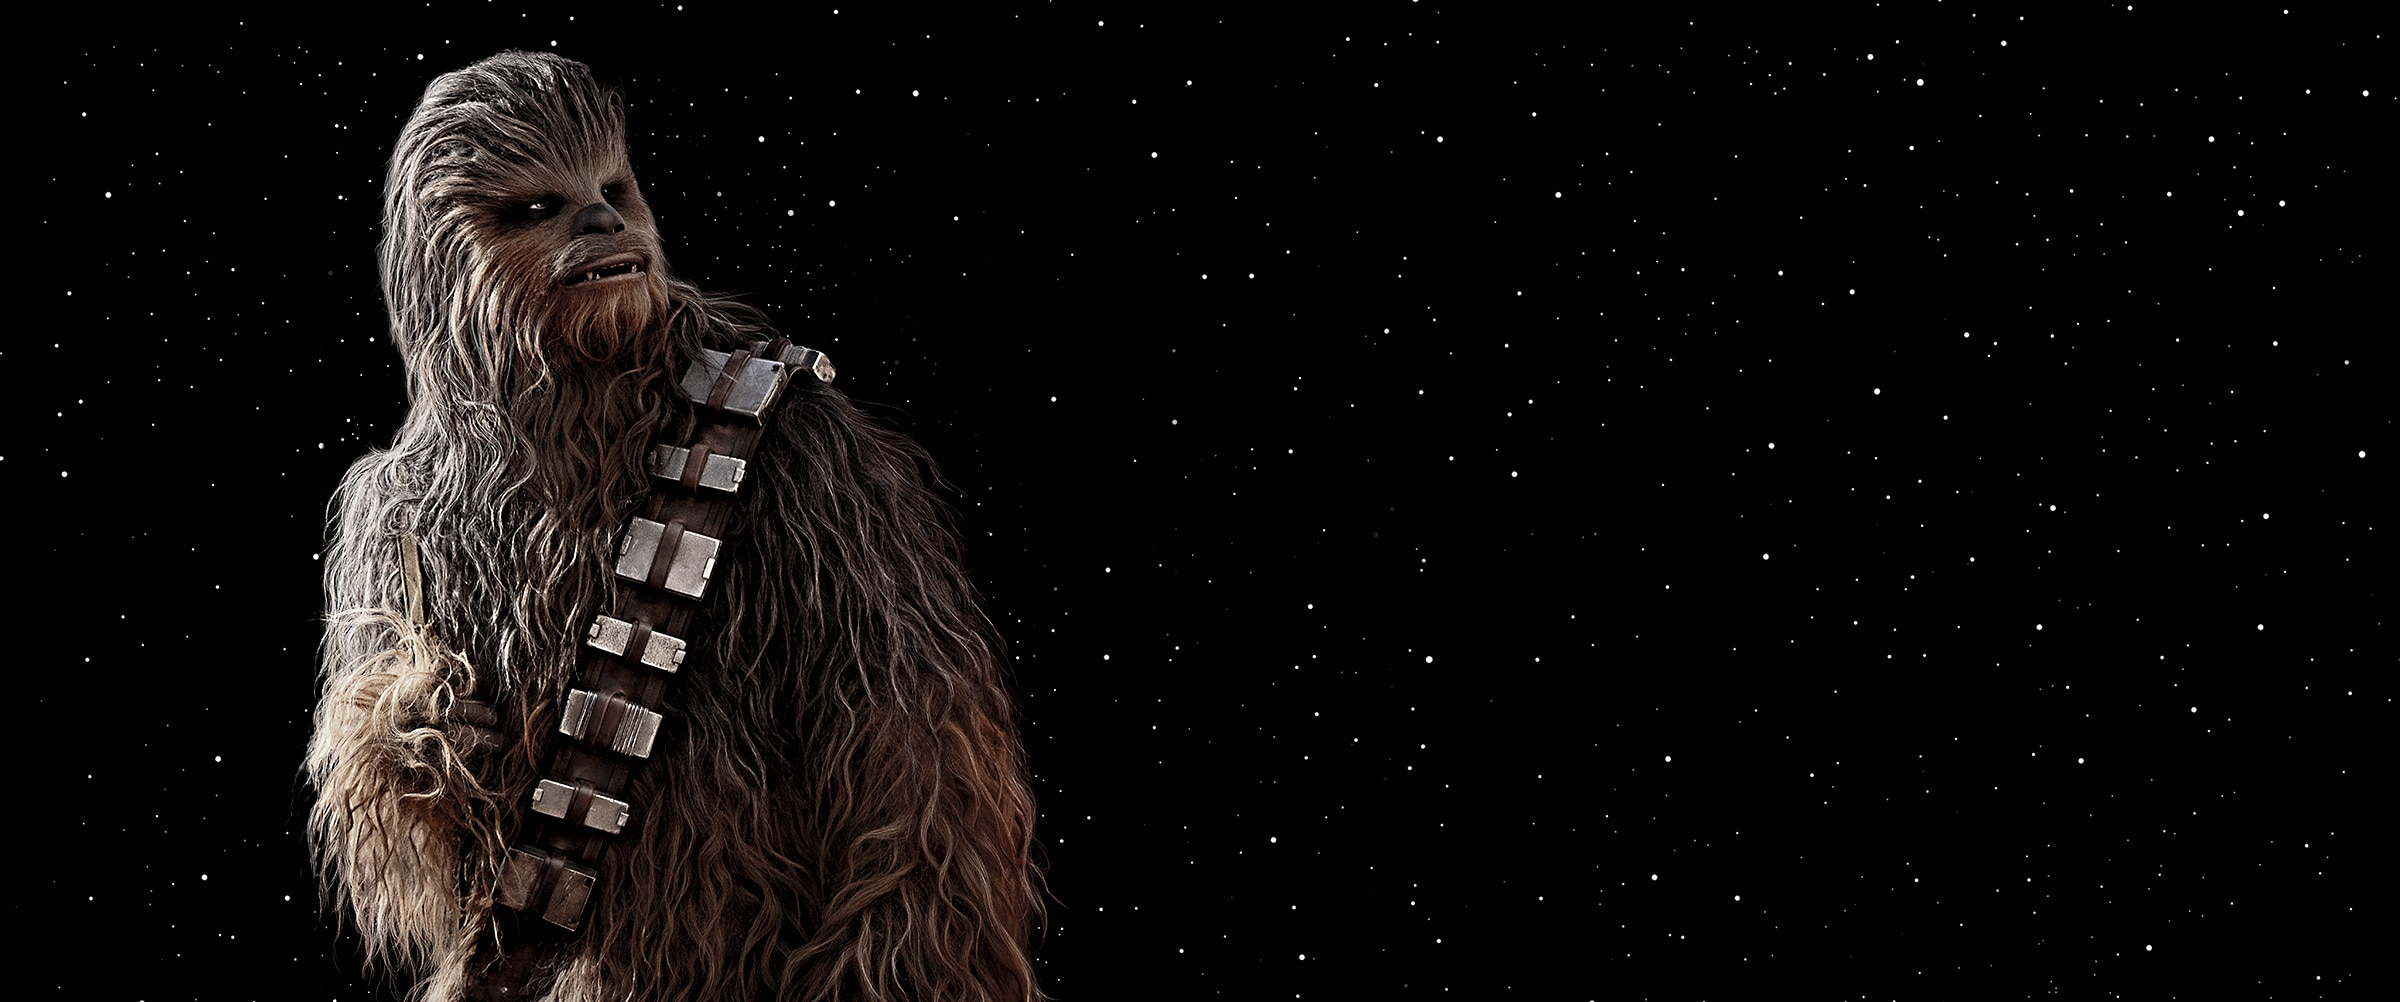 Star Wars Episode IX: The Rise of Skywalker (2019) - Homepage Hero - CHEWBACCA